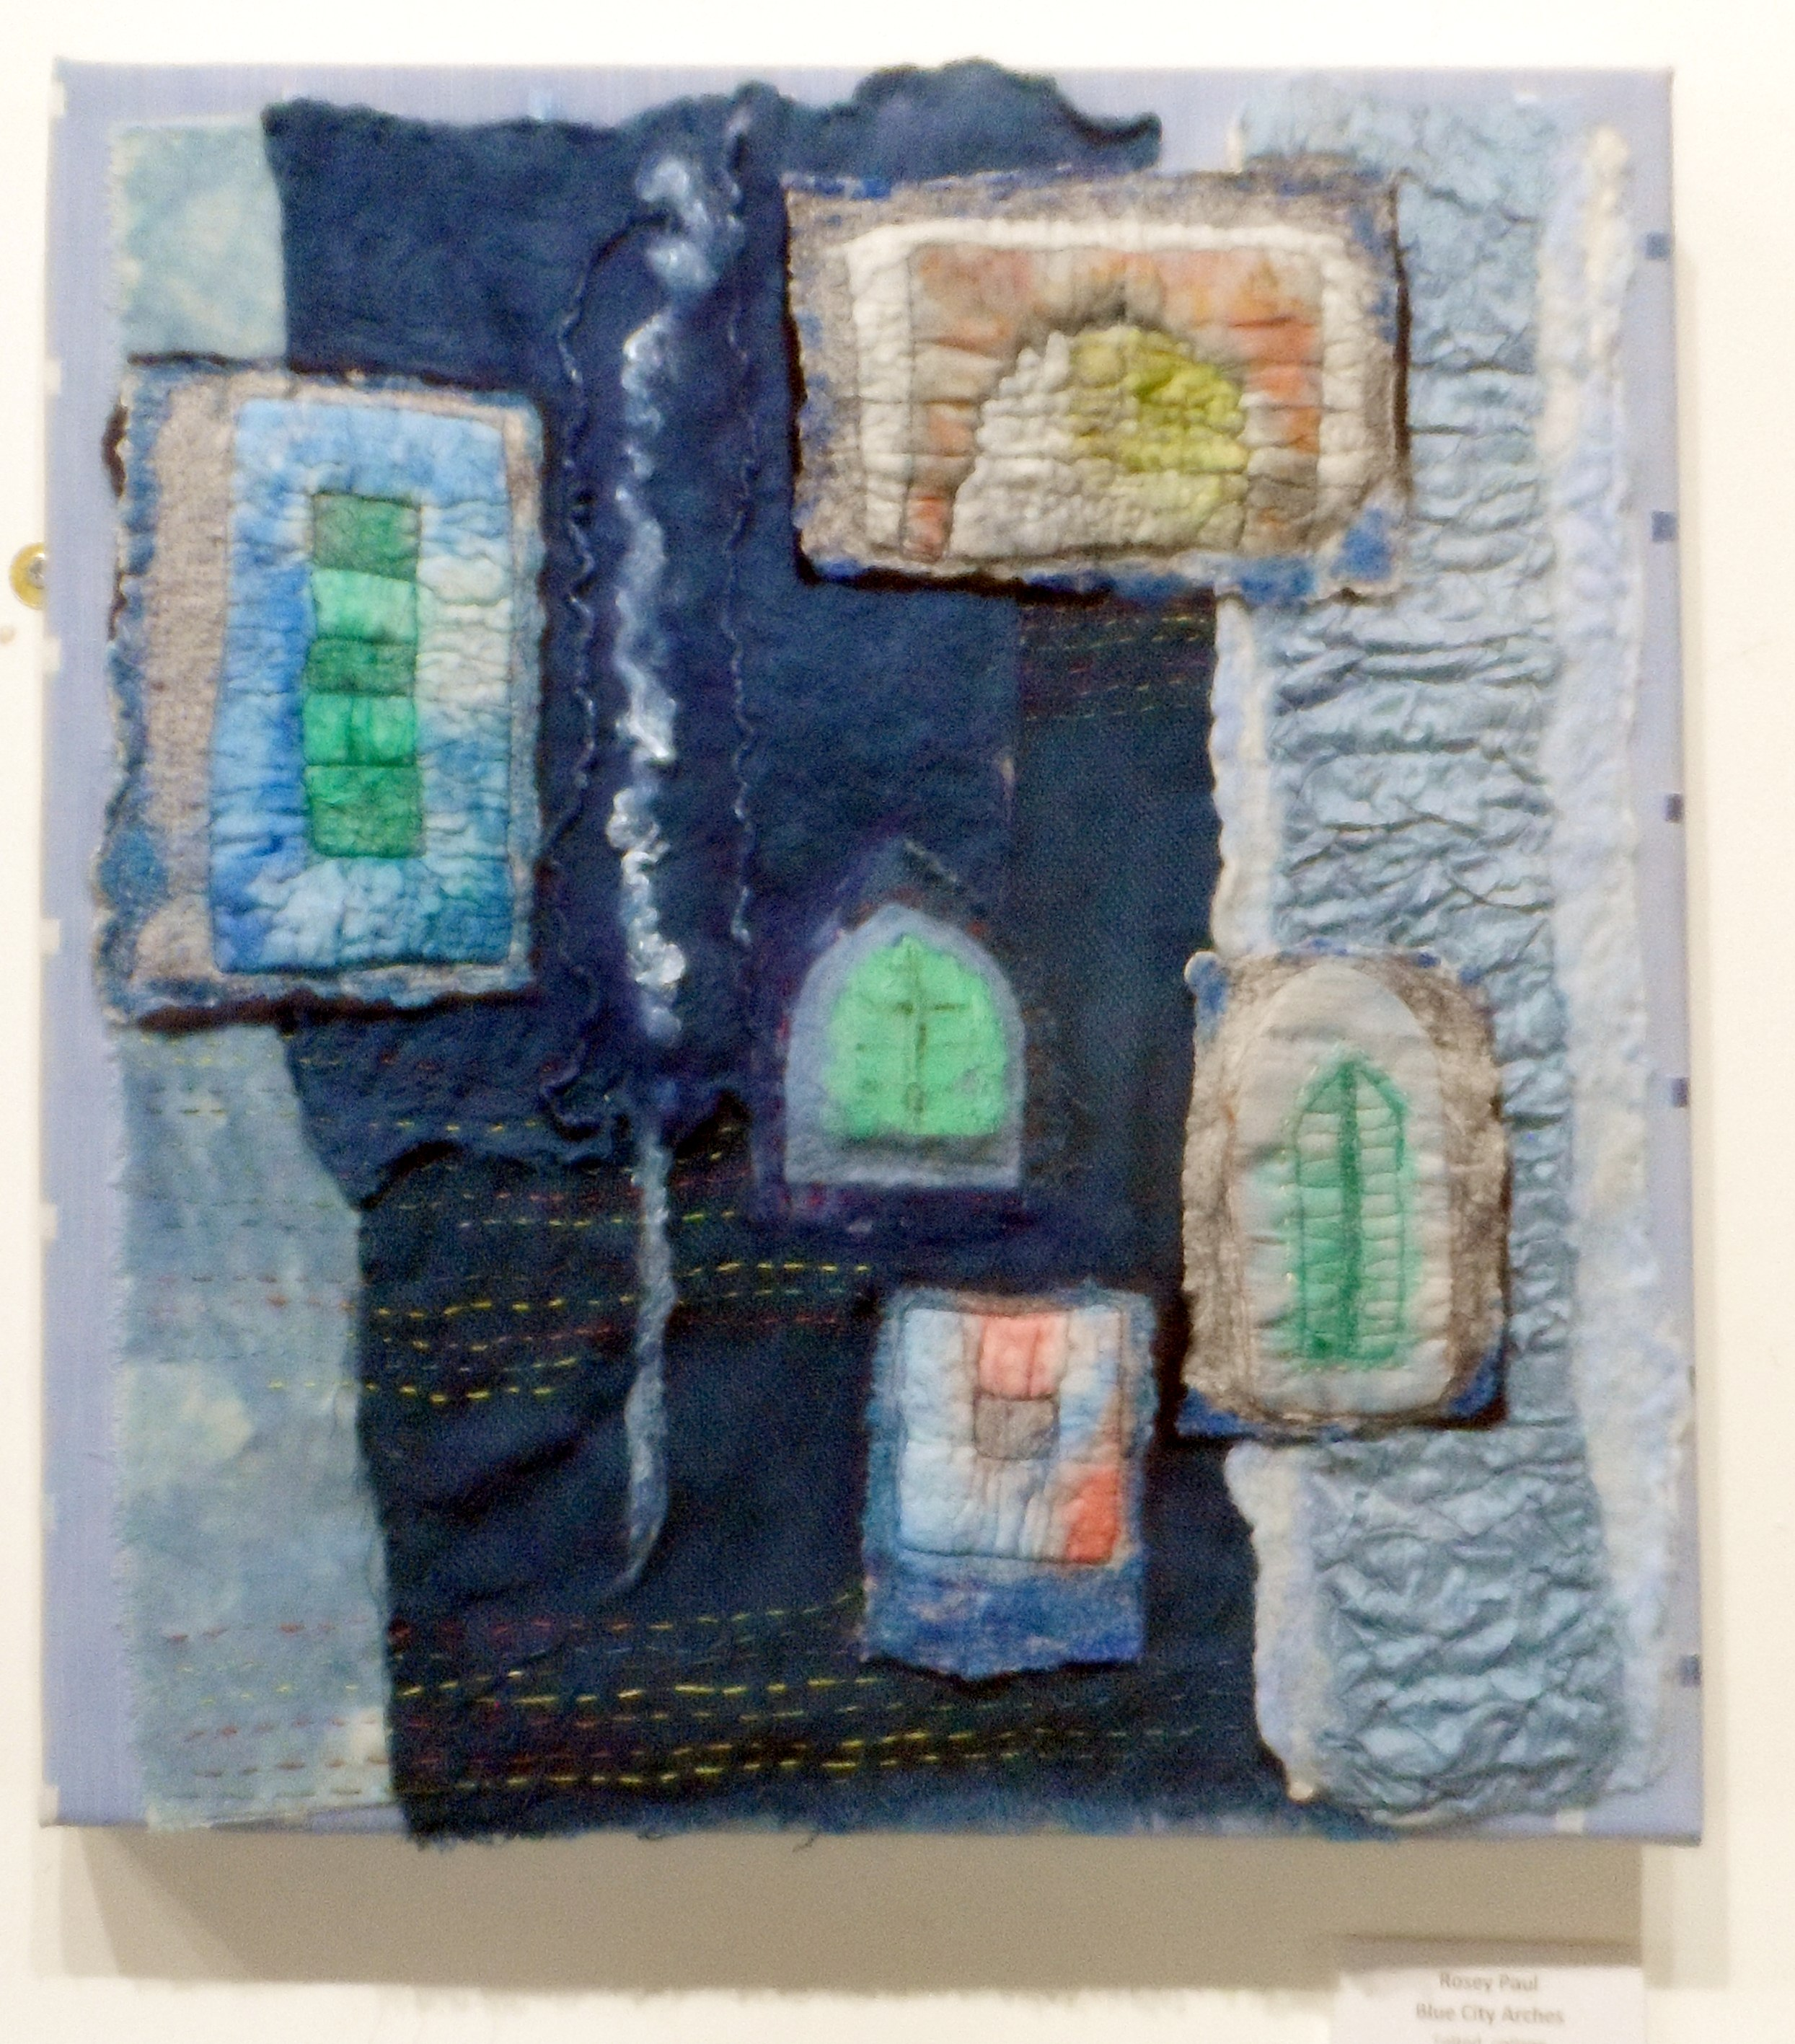 BLUE CITY ARCHES, felted collage, Re-View Textile Group, frodsham 2019